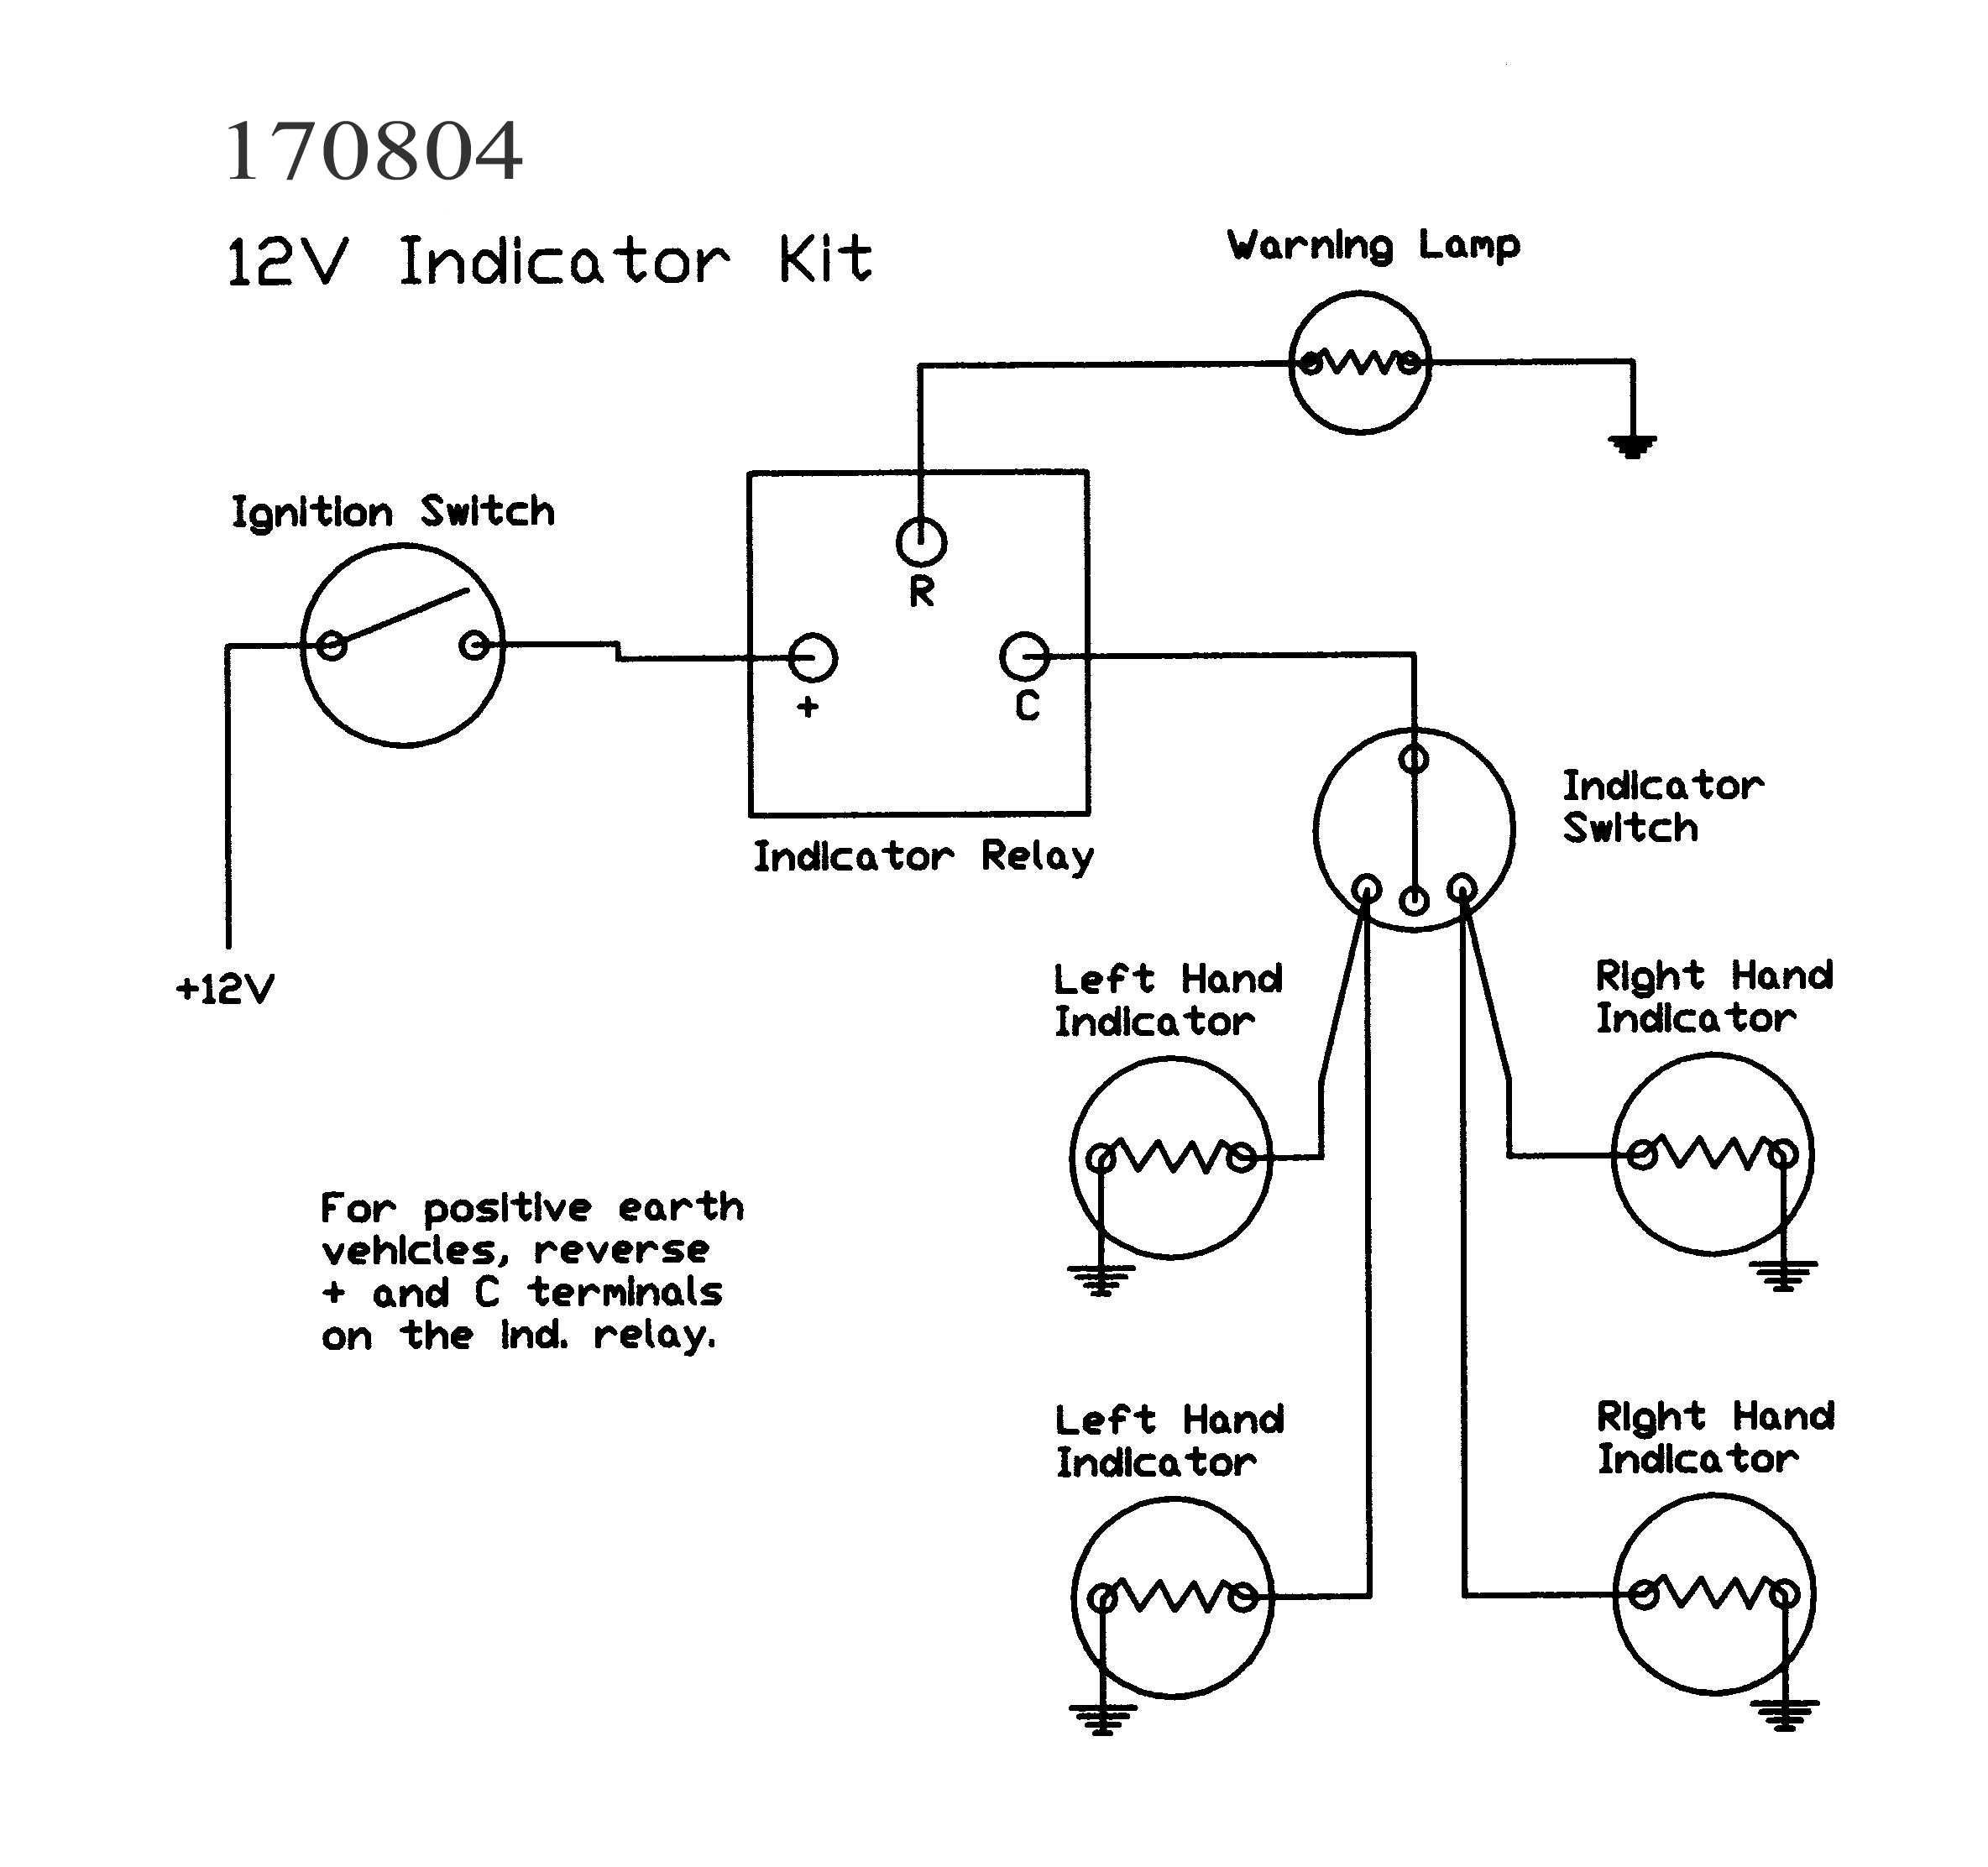 170804_(12v)_schematic indicator kits (without lamps) flasher wiring diagram 12v at aneh.co